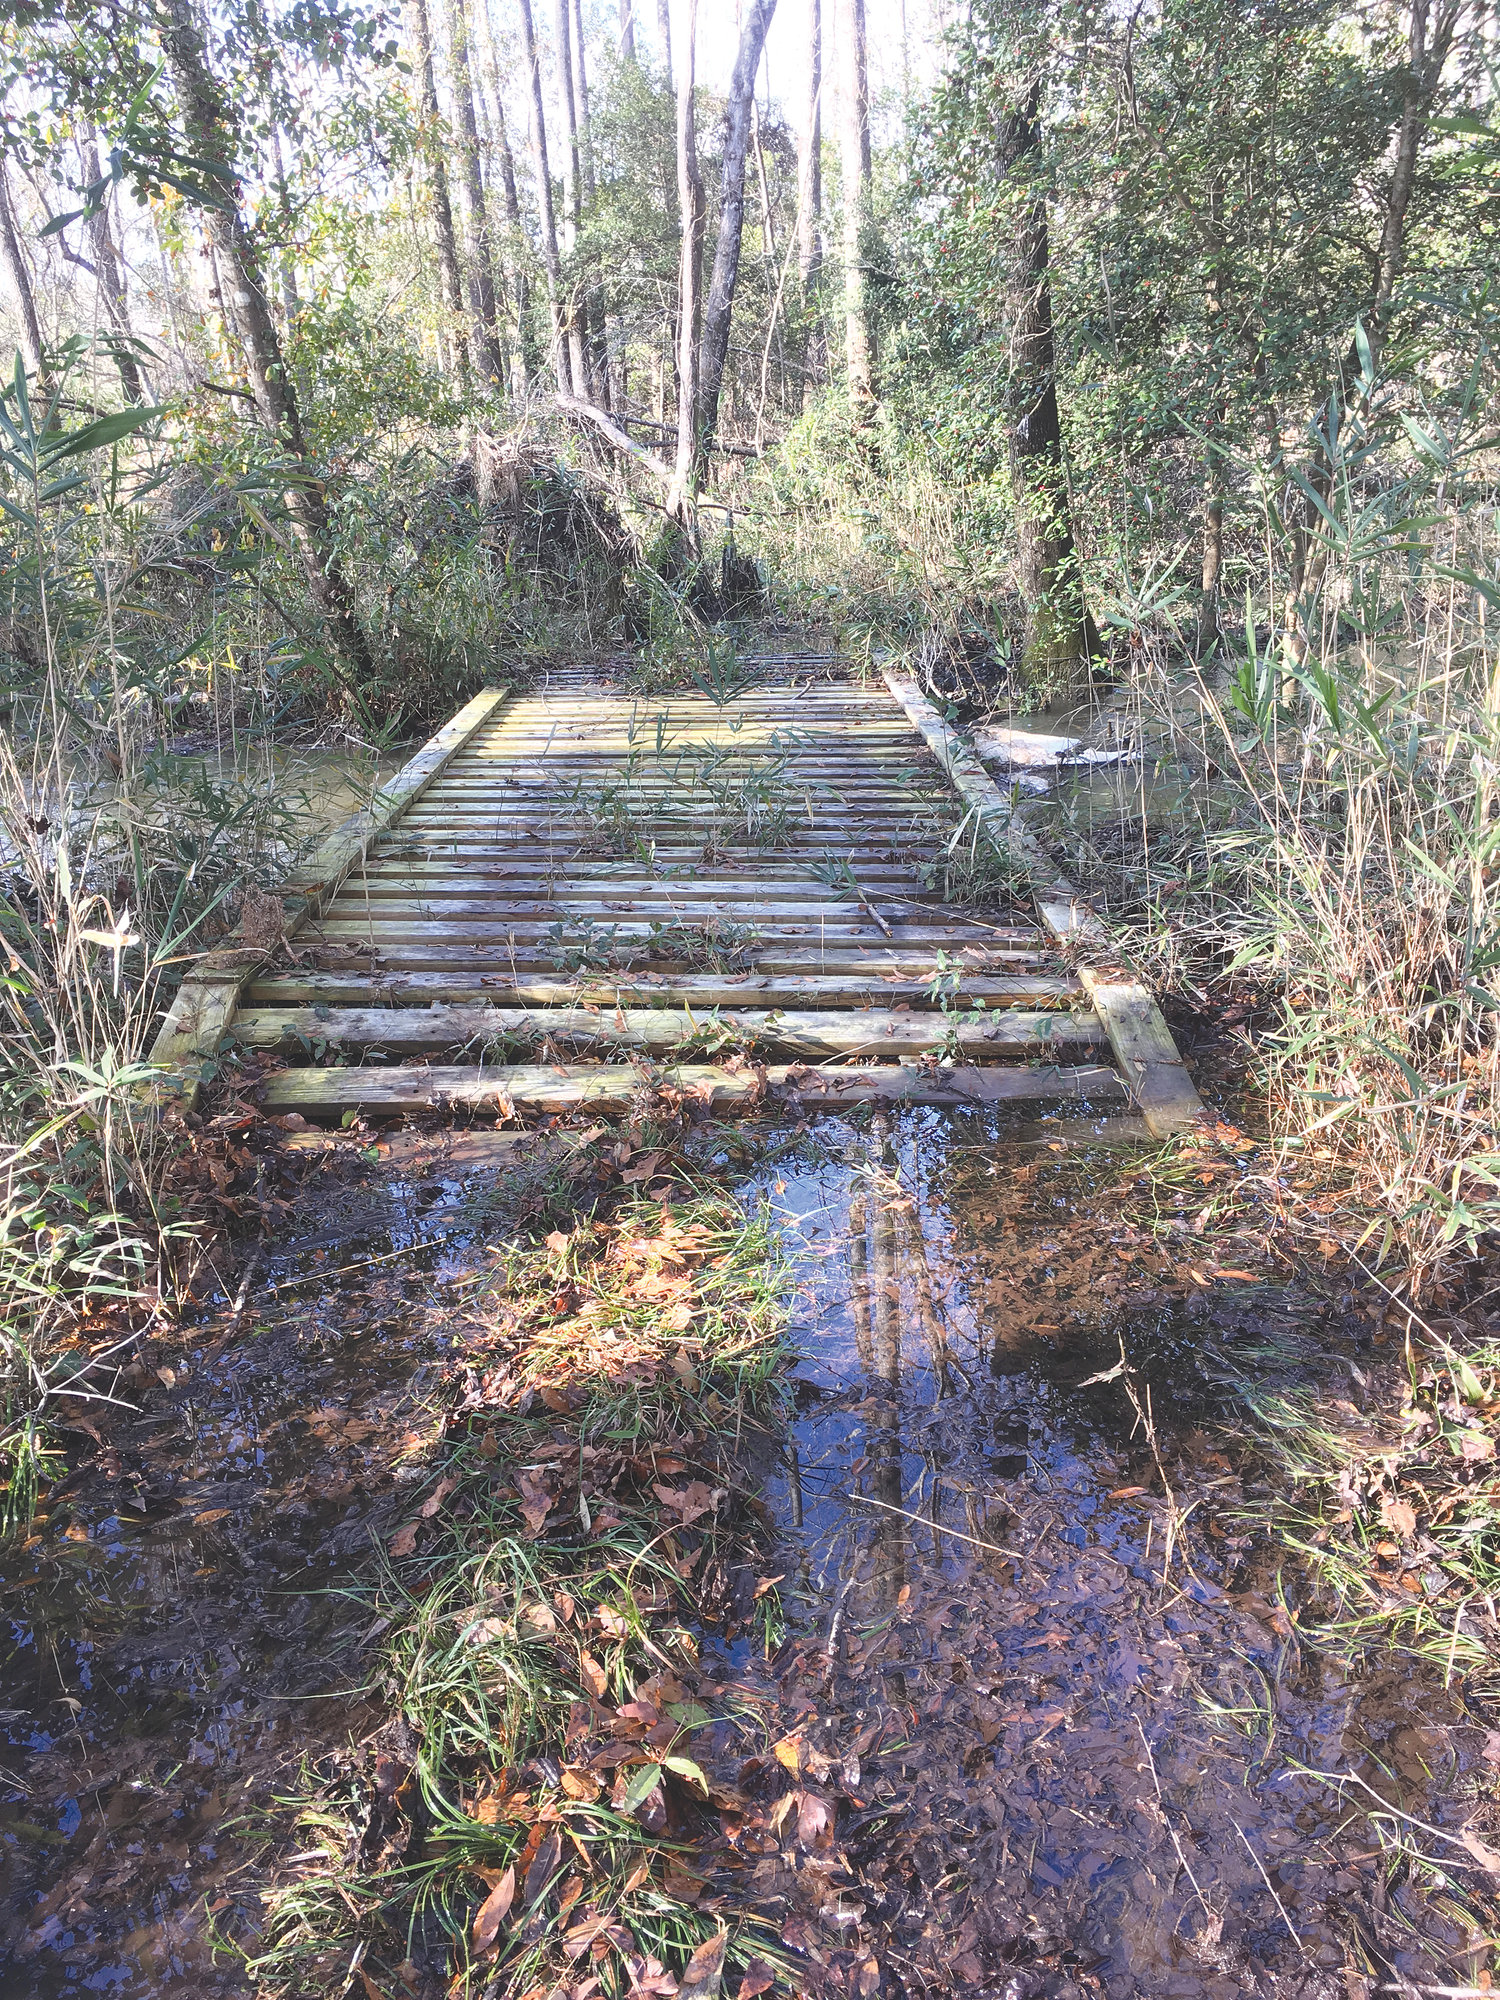 DAN GEDDINGS / SPECIAL TO THE SUMTER ITEMFinding a bridge on the creek was a nice surprise.